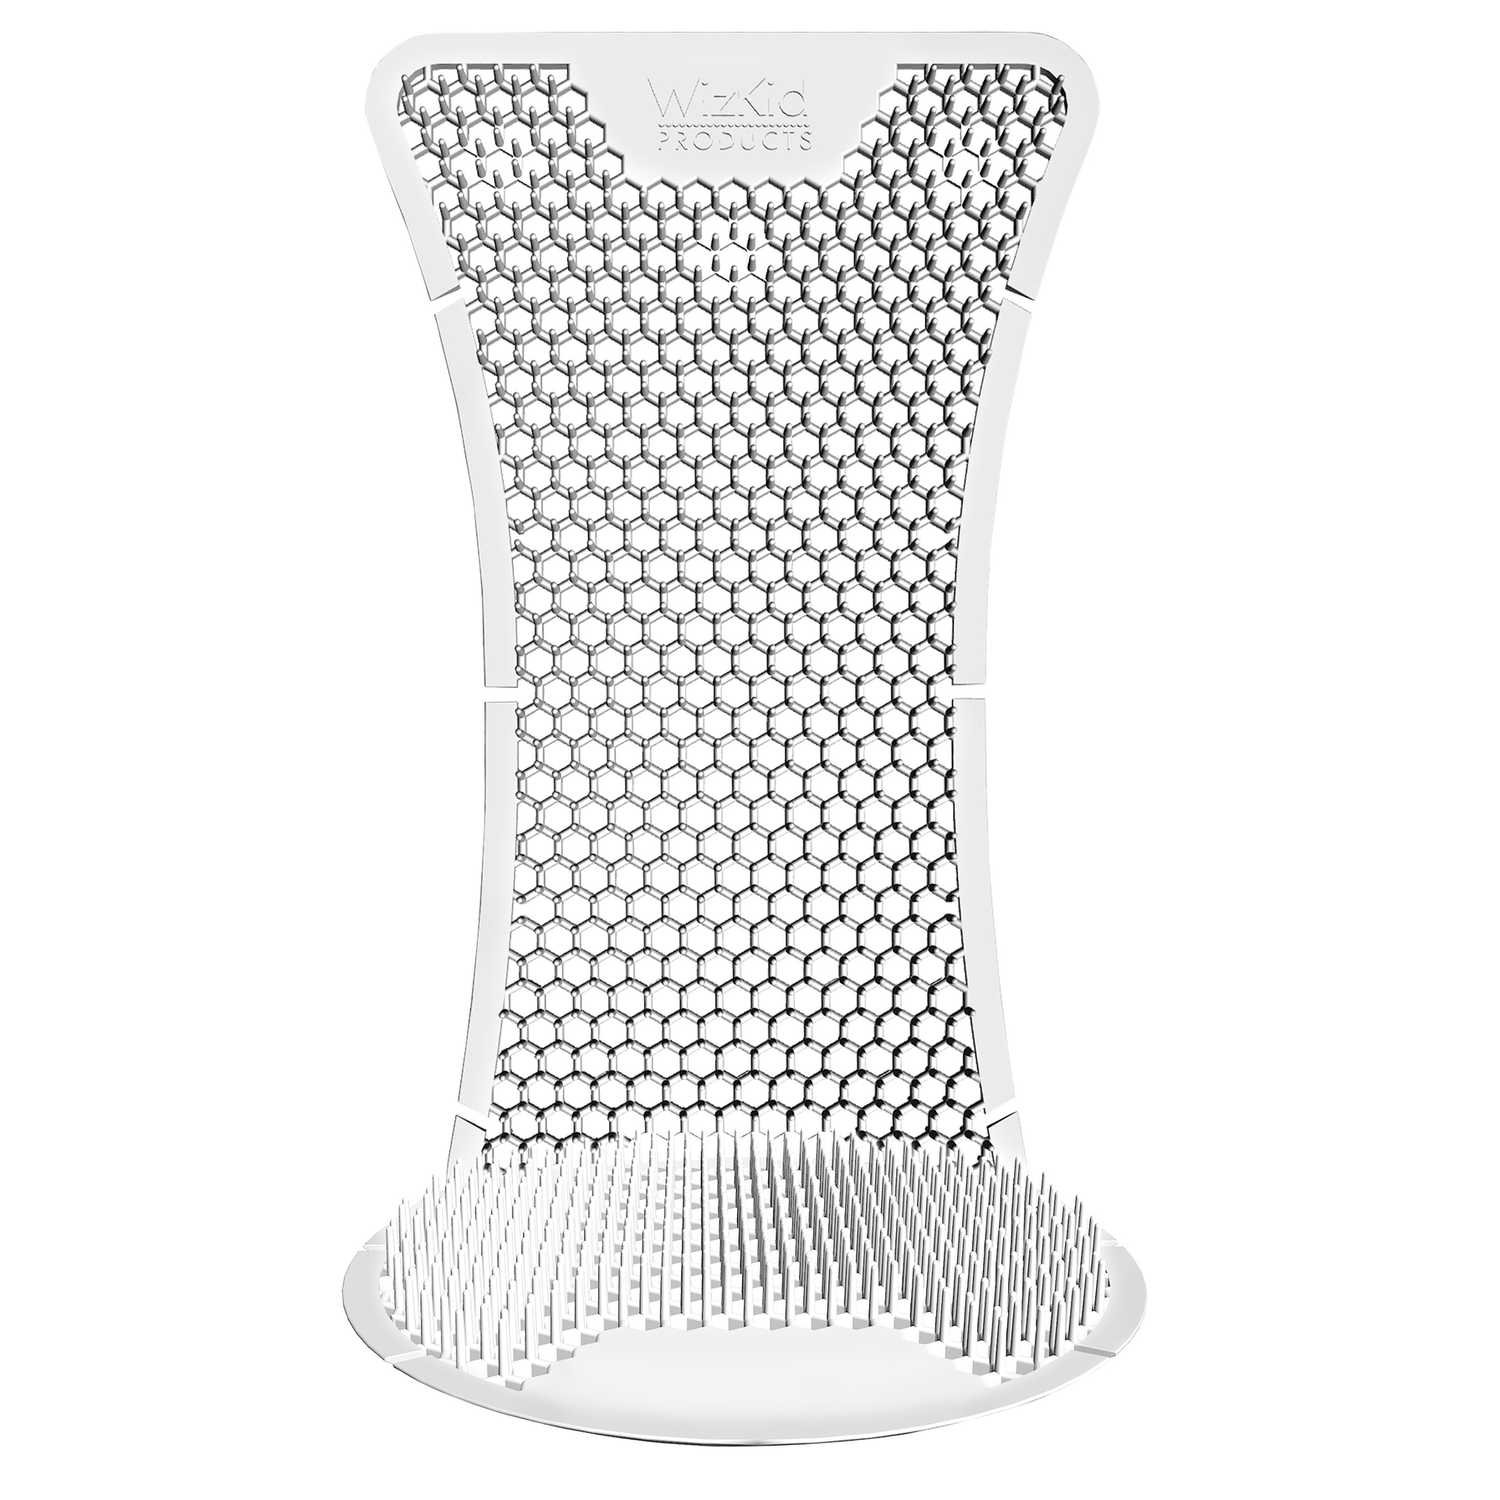 Splash Hog Urinal Screen - Cotton/Blossom Scent | Reduces Splash-Back | Long Lasting Fragrance | Deodorizes for up to 60 Days | 6 Pack by T Market Products